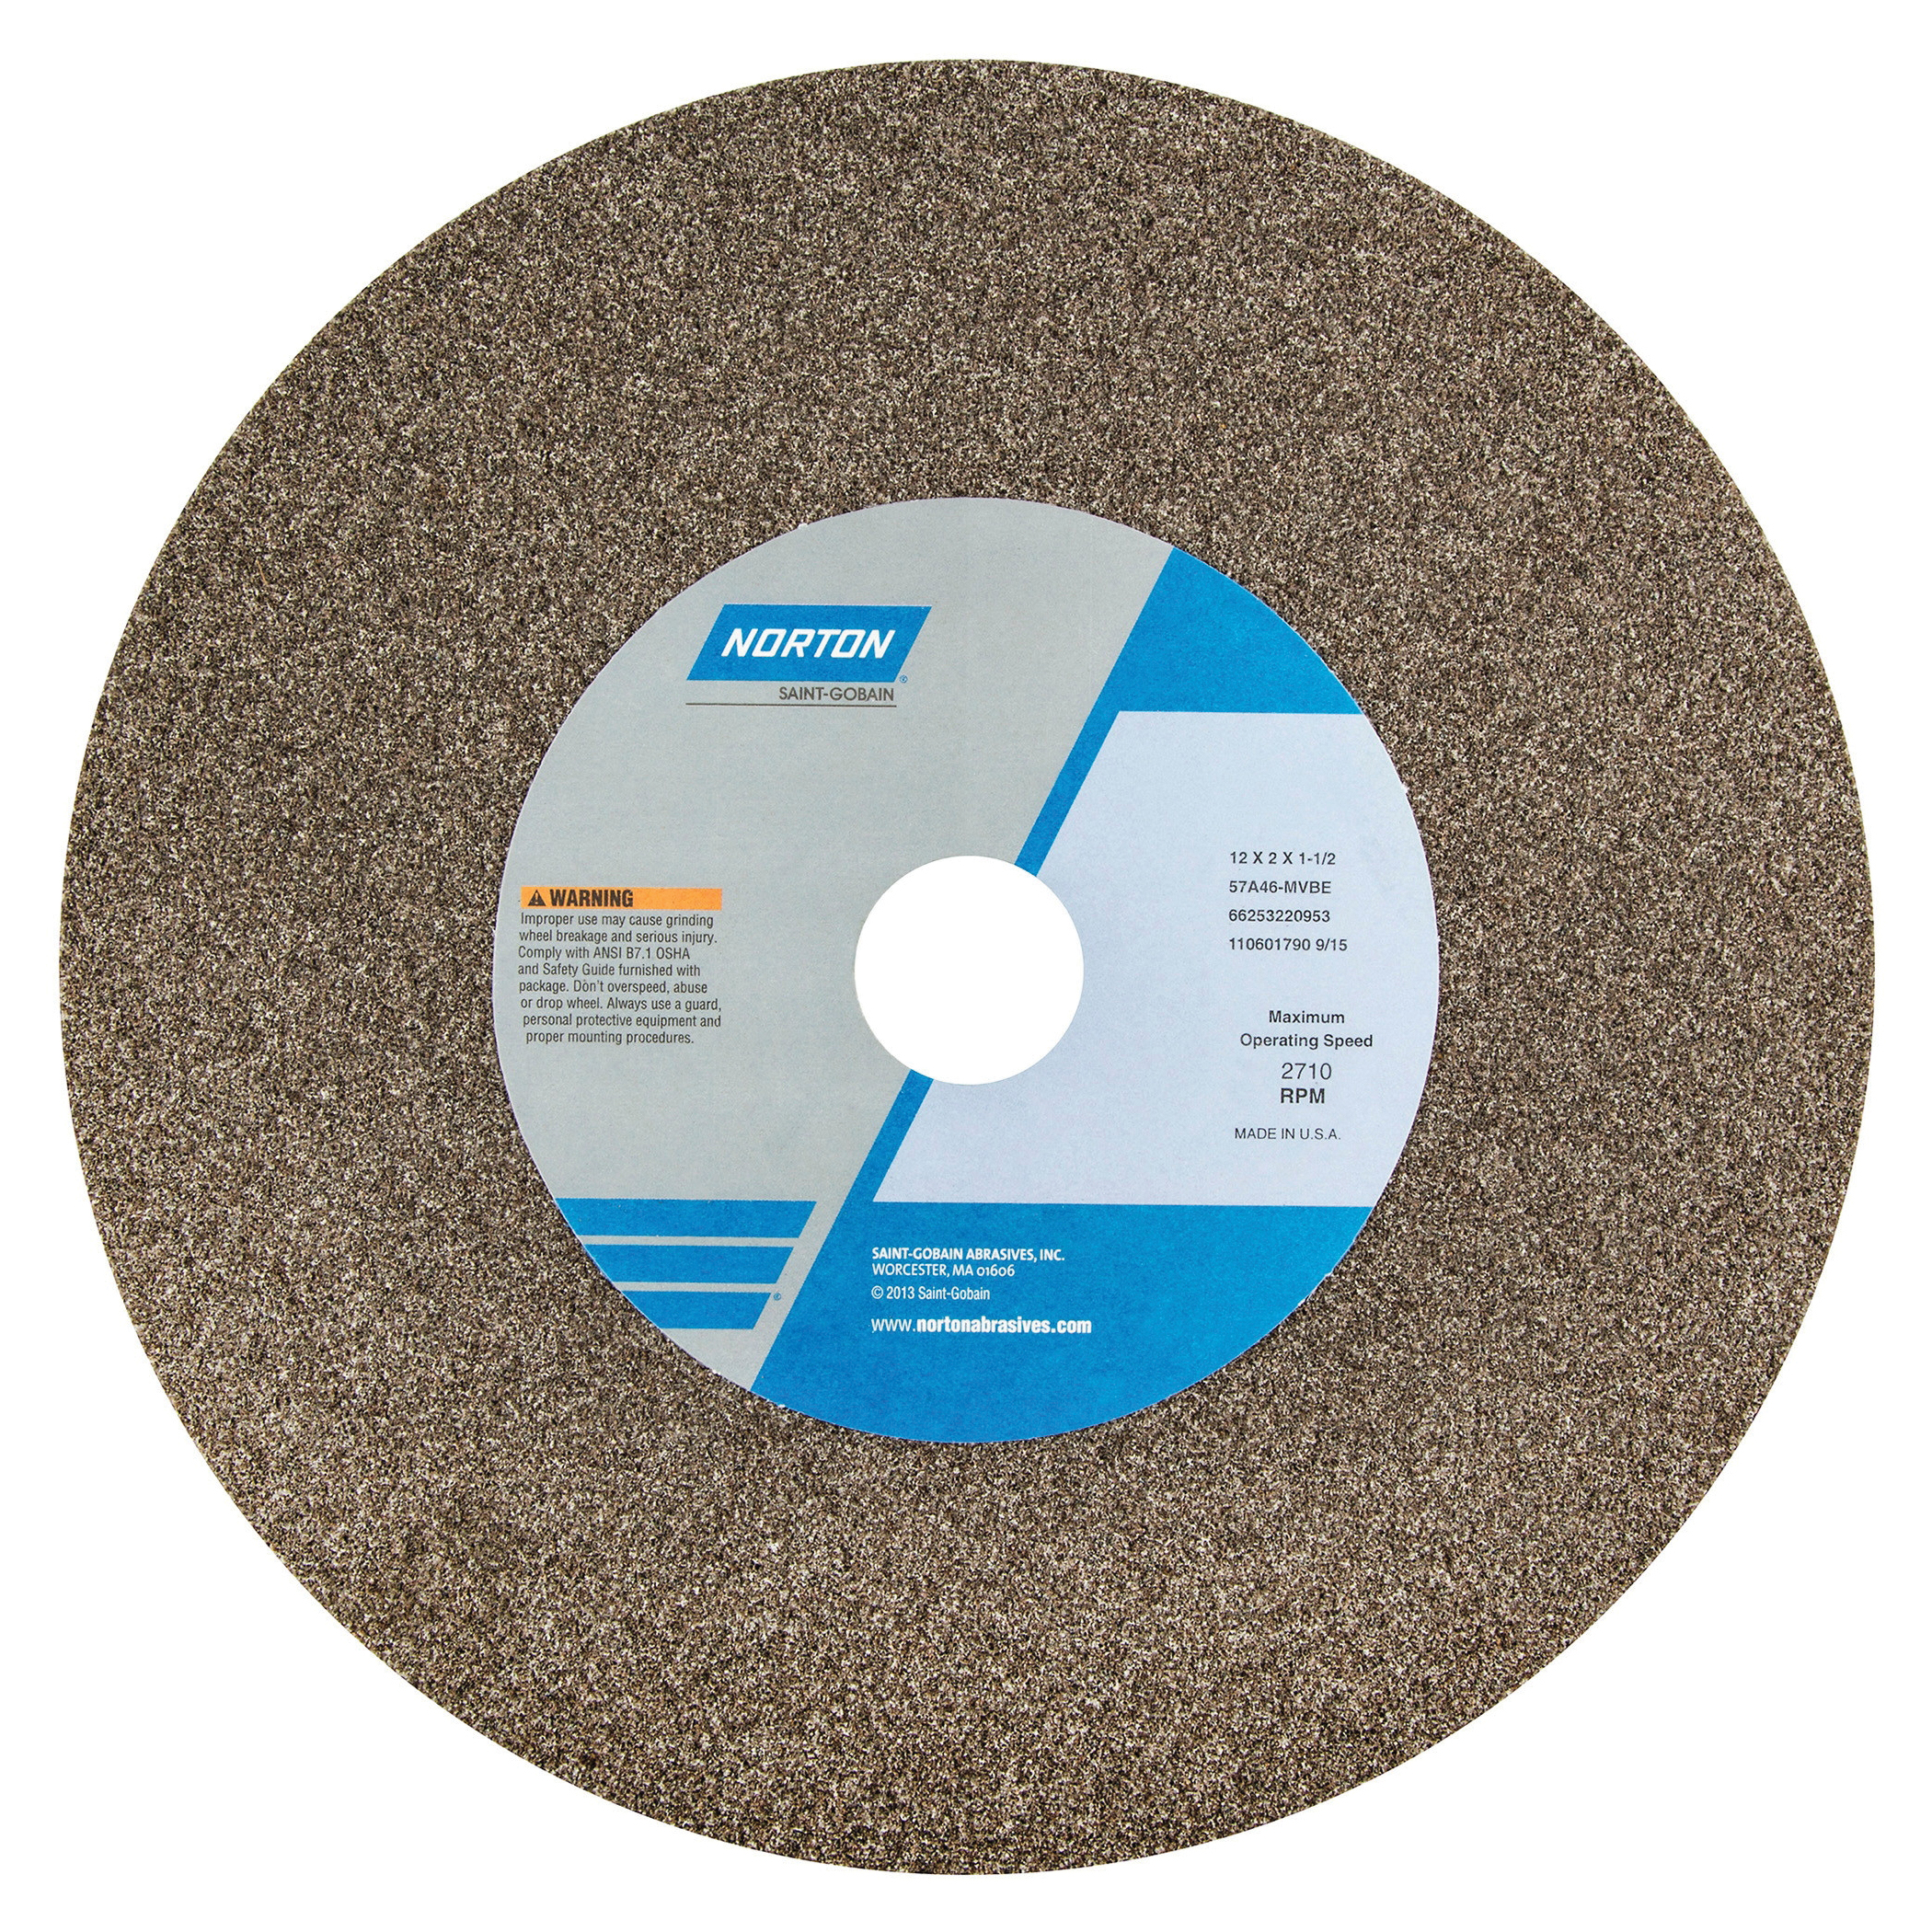 Norton® 66253319972 57A Type 01 Bench and Pedestal Grinding Wheel, 14 in Dia x 2 in THK, 1-1/2 in Center Hole, 24 Grit, Aluminum Oxide Abrasive